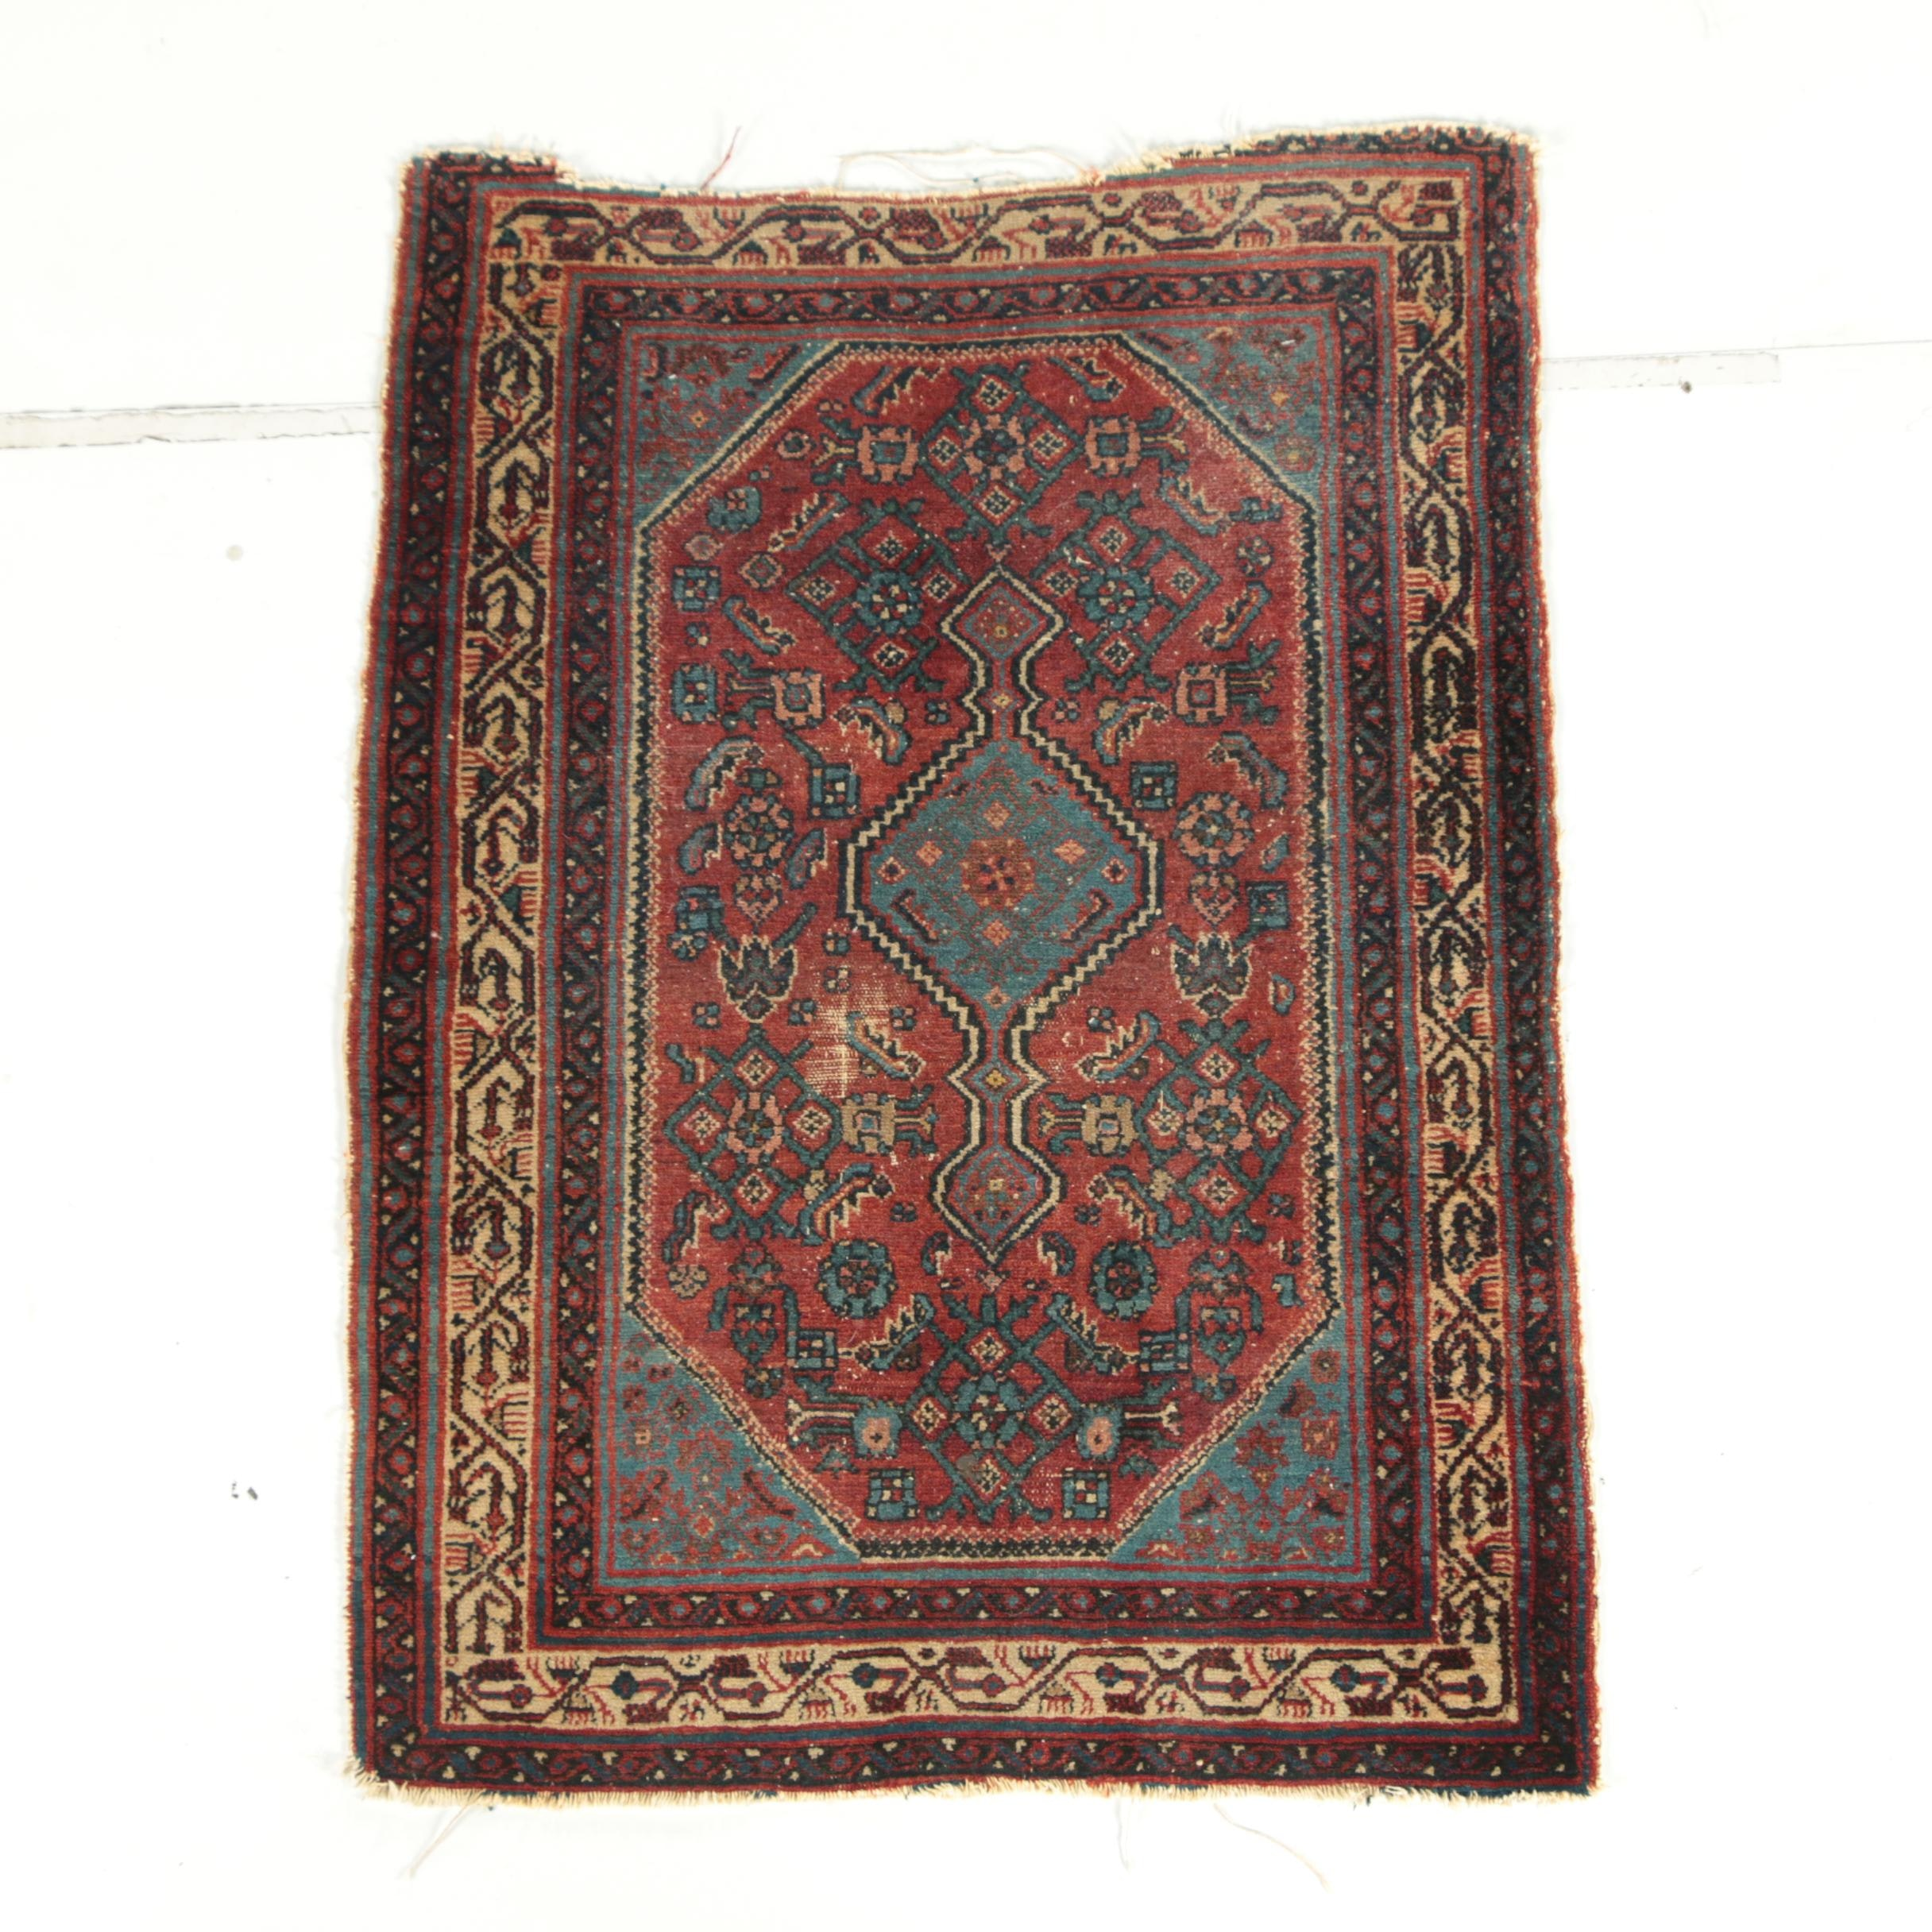 Semi-Antique Hand-Knotted Persian Bijar Wool Rug